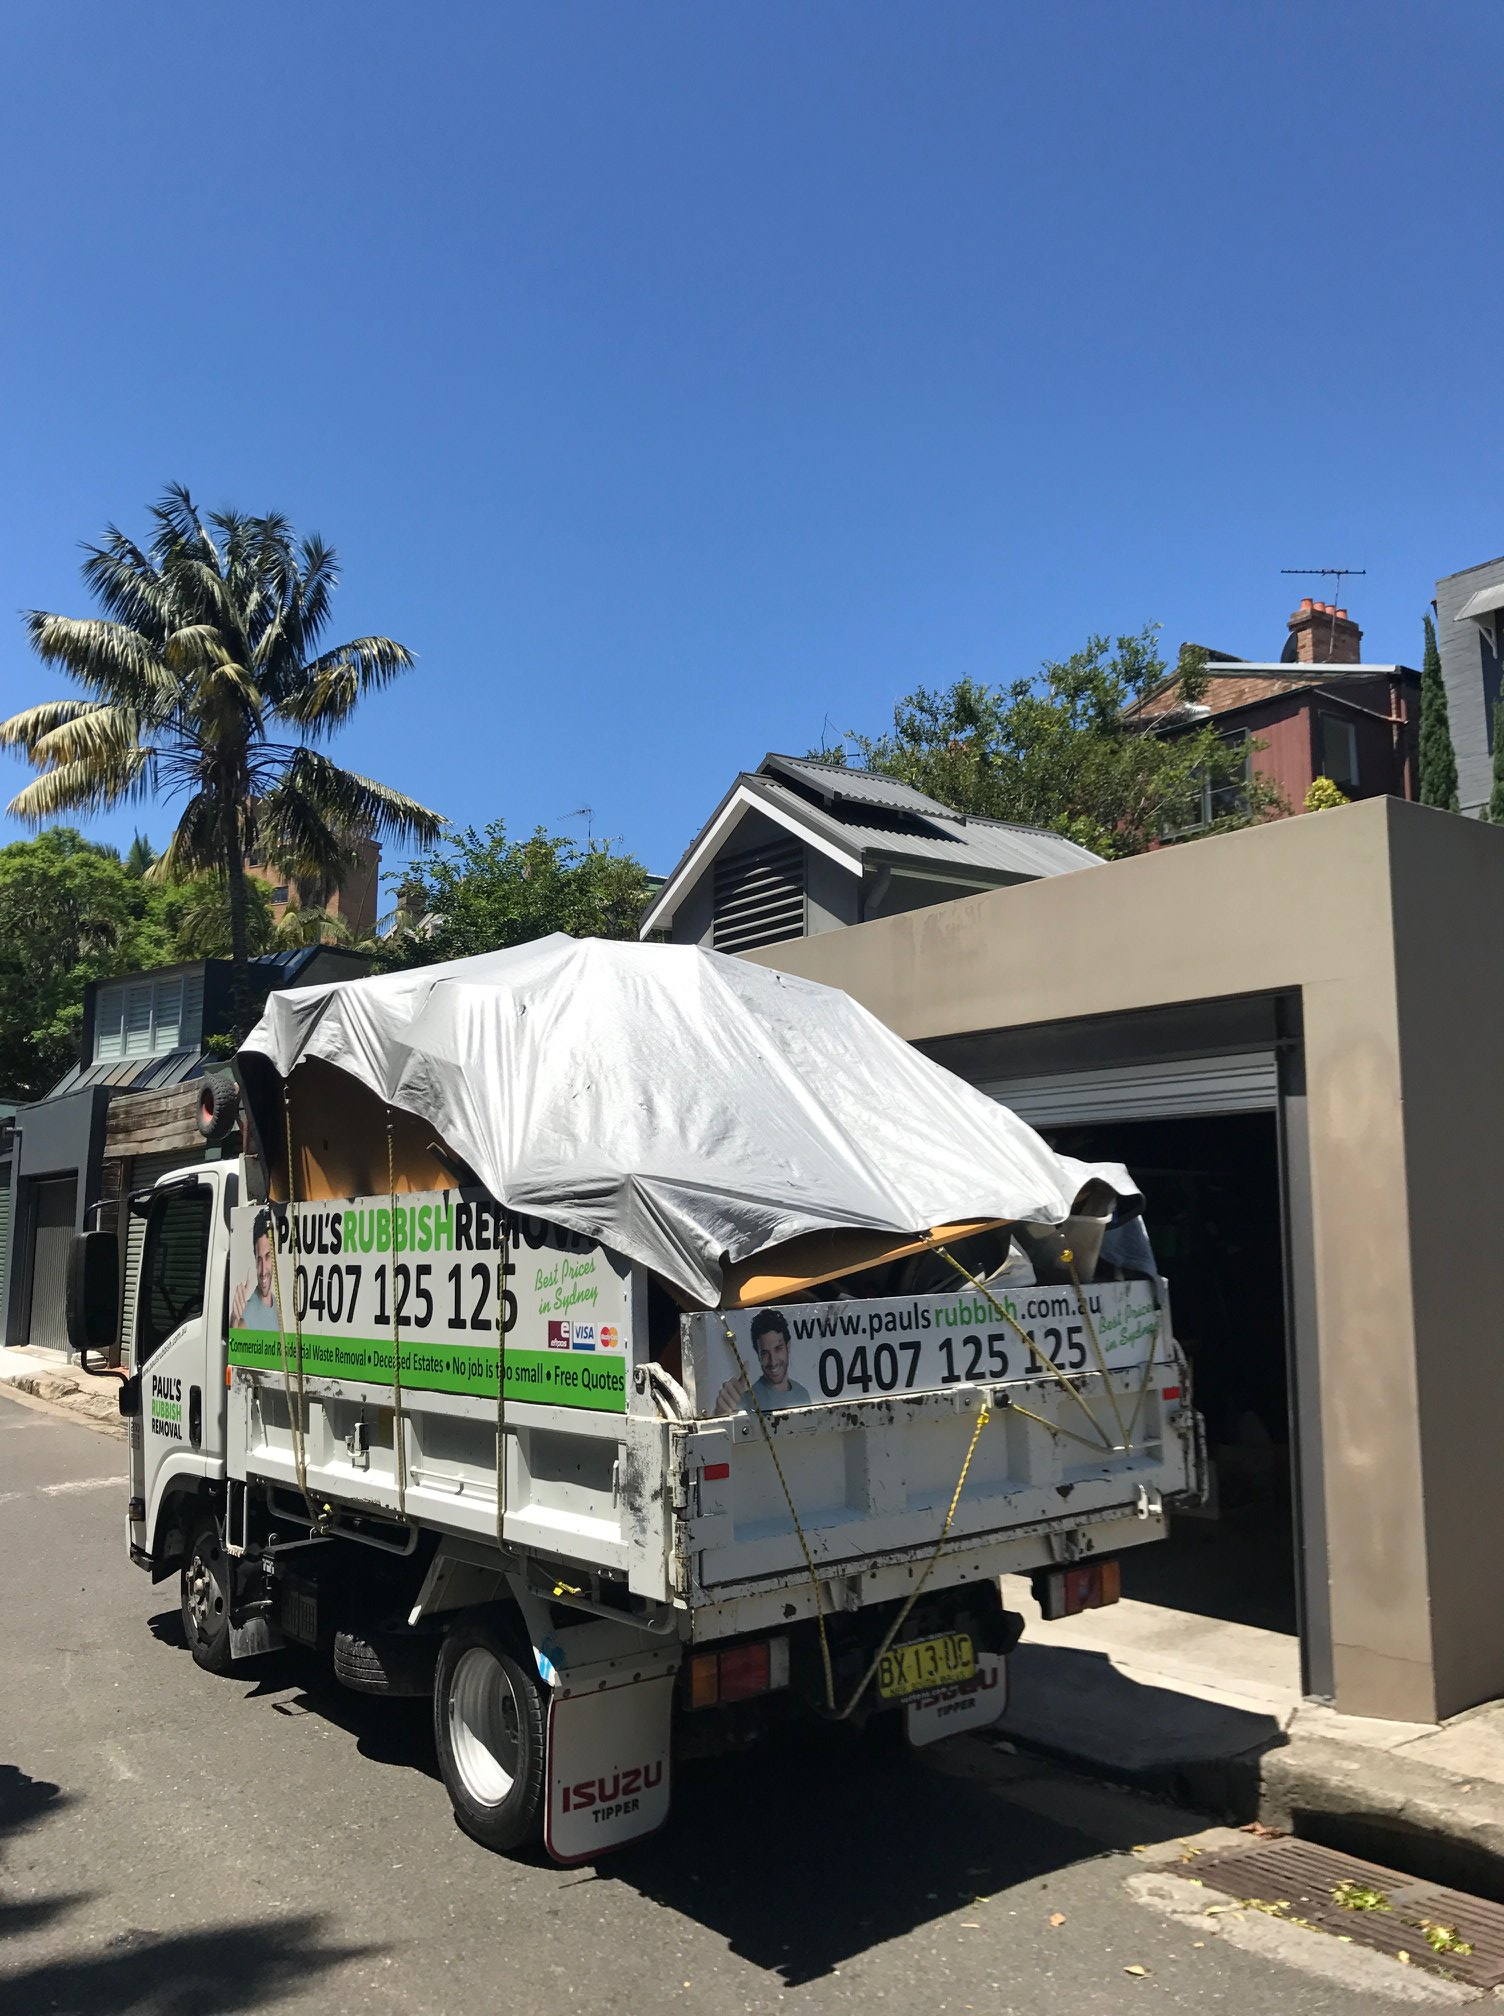 pauls rubbish removal full truck